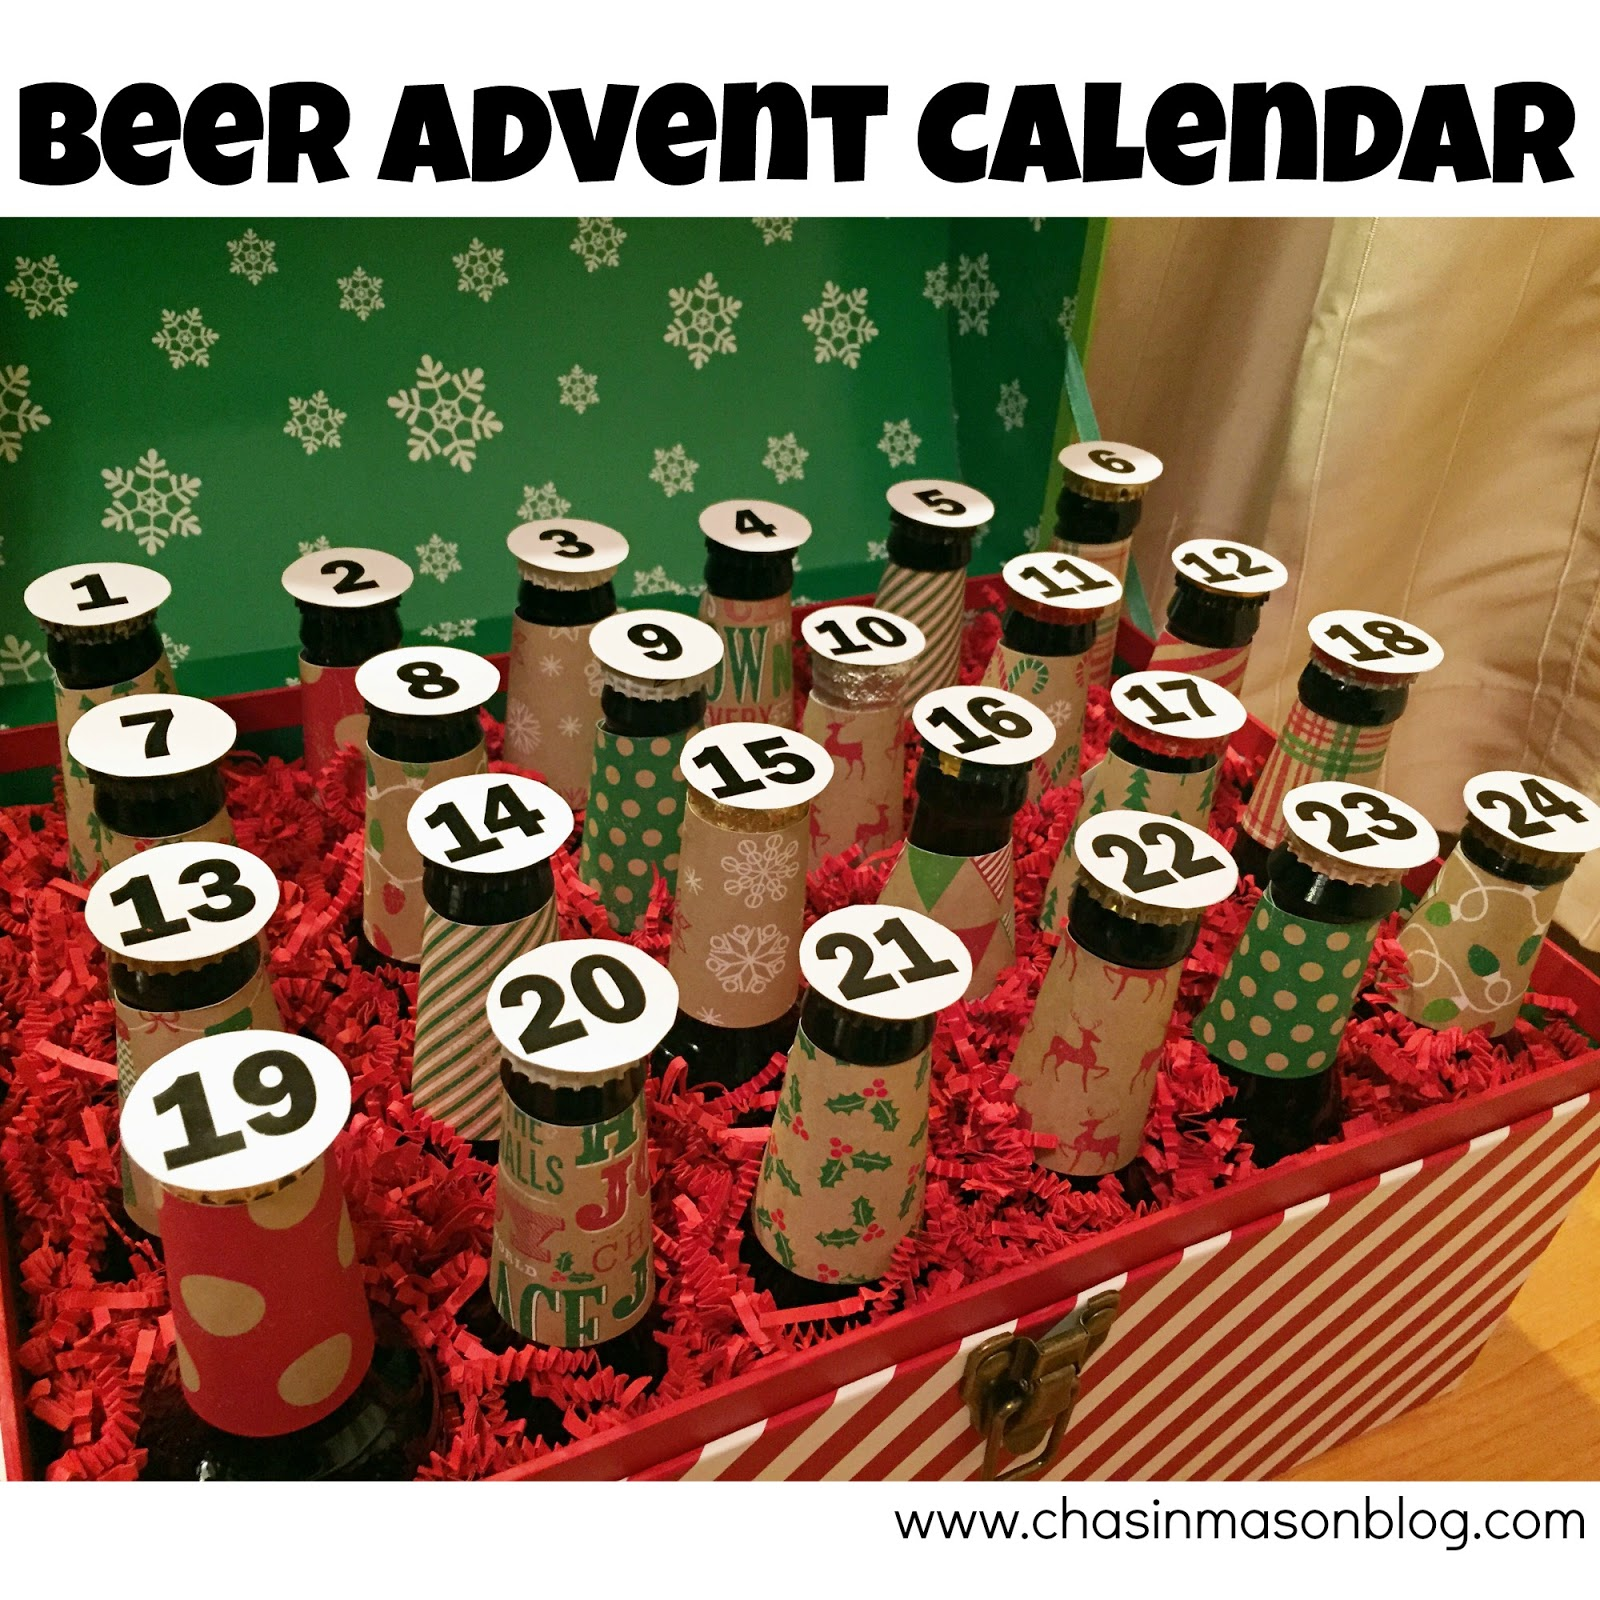 Chasin mason gifts for the husband diy beer advent calendar chasin mason beer advent calendar solutioingenieria Image collections